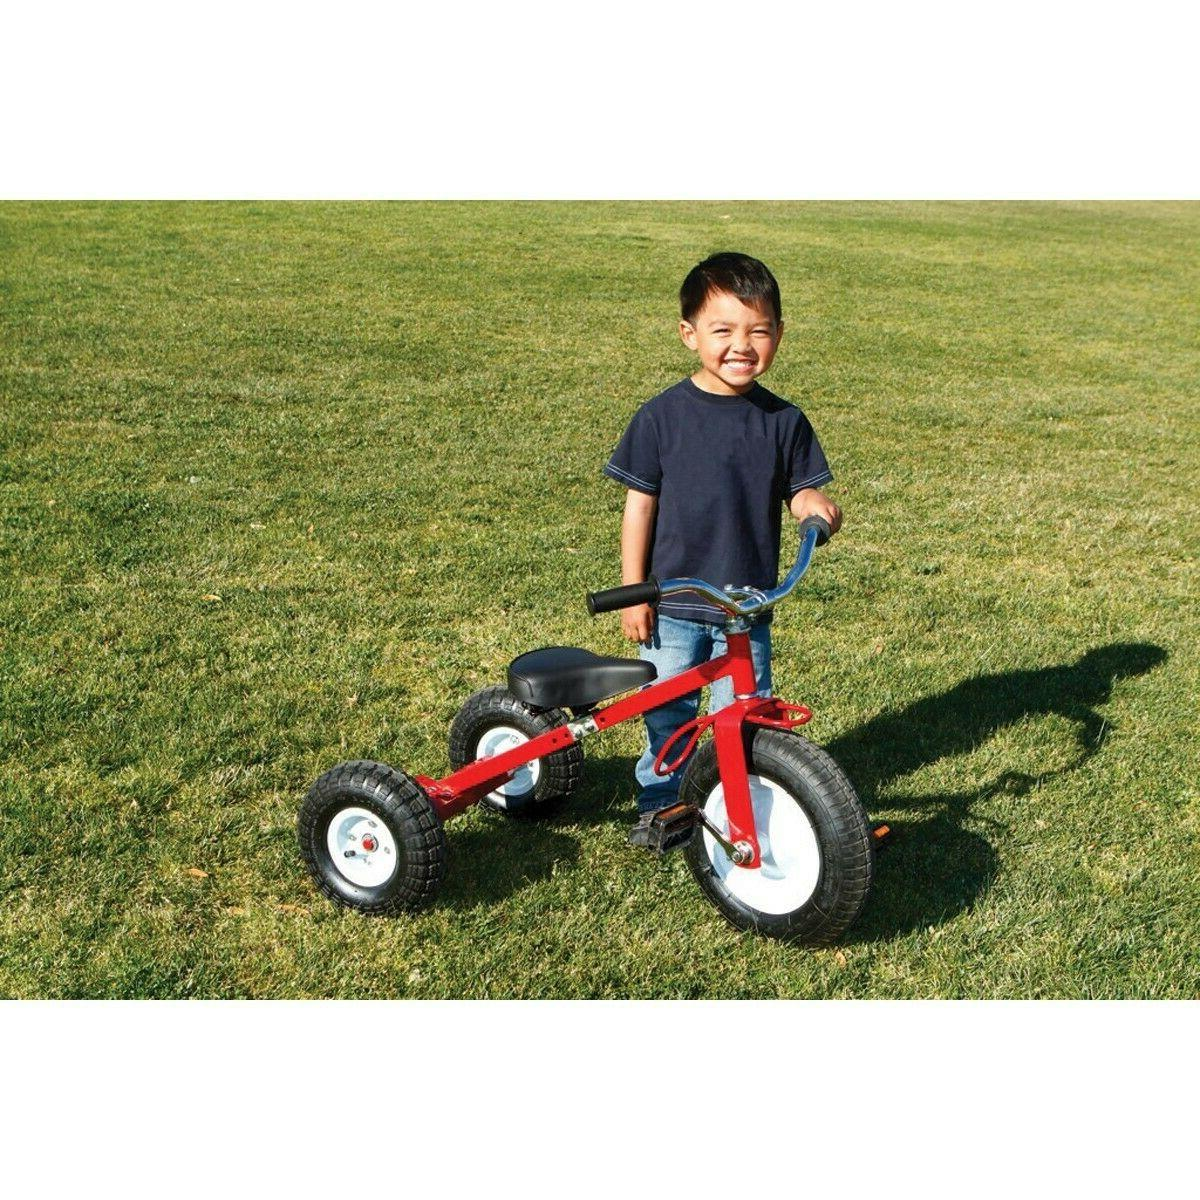 tricycle all terrain children child trike daycare